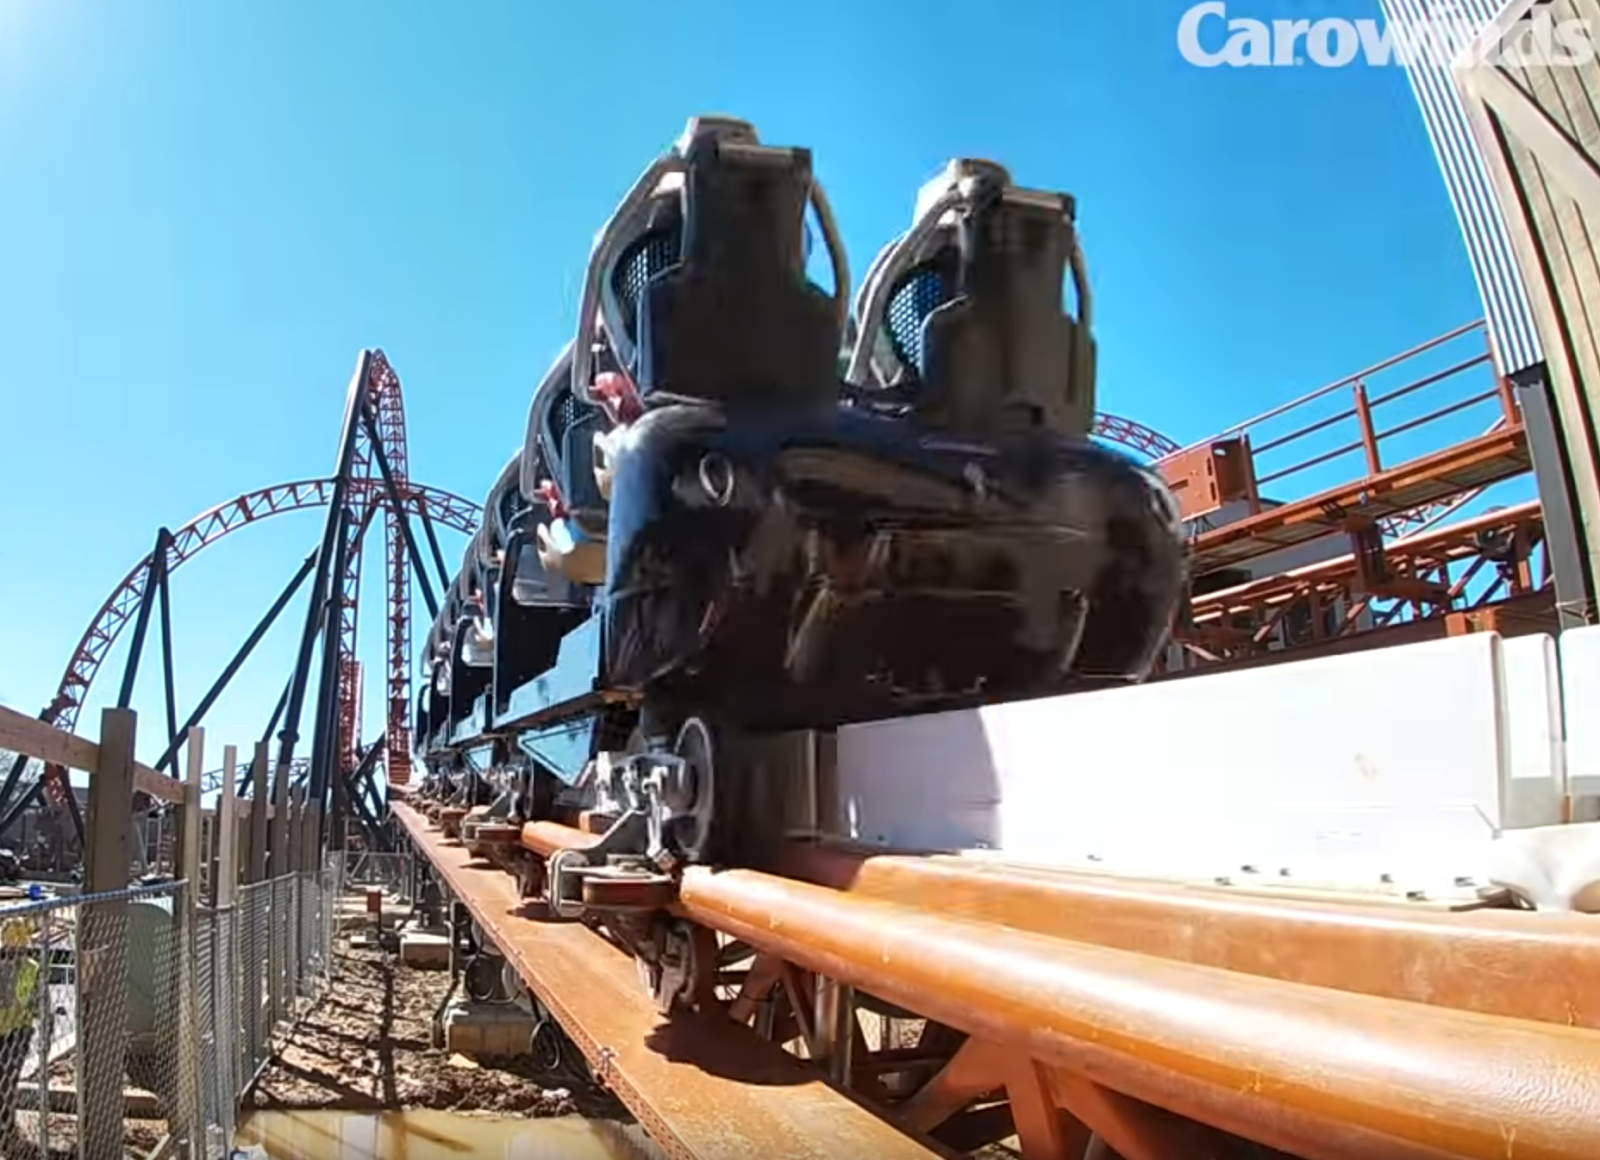 NewsPlusNotes: Copperhead Strike Comes to Life at Carowinds